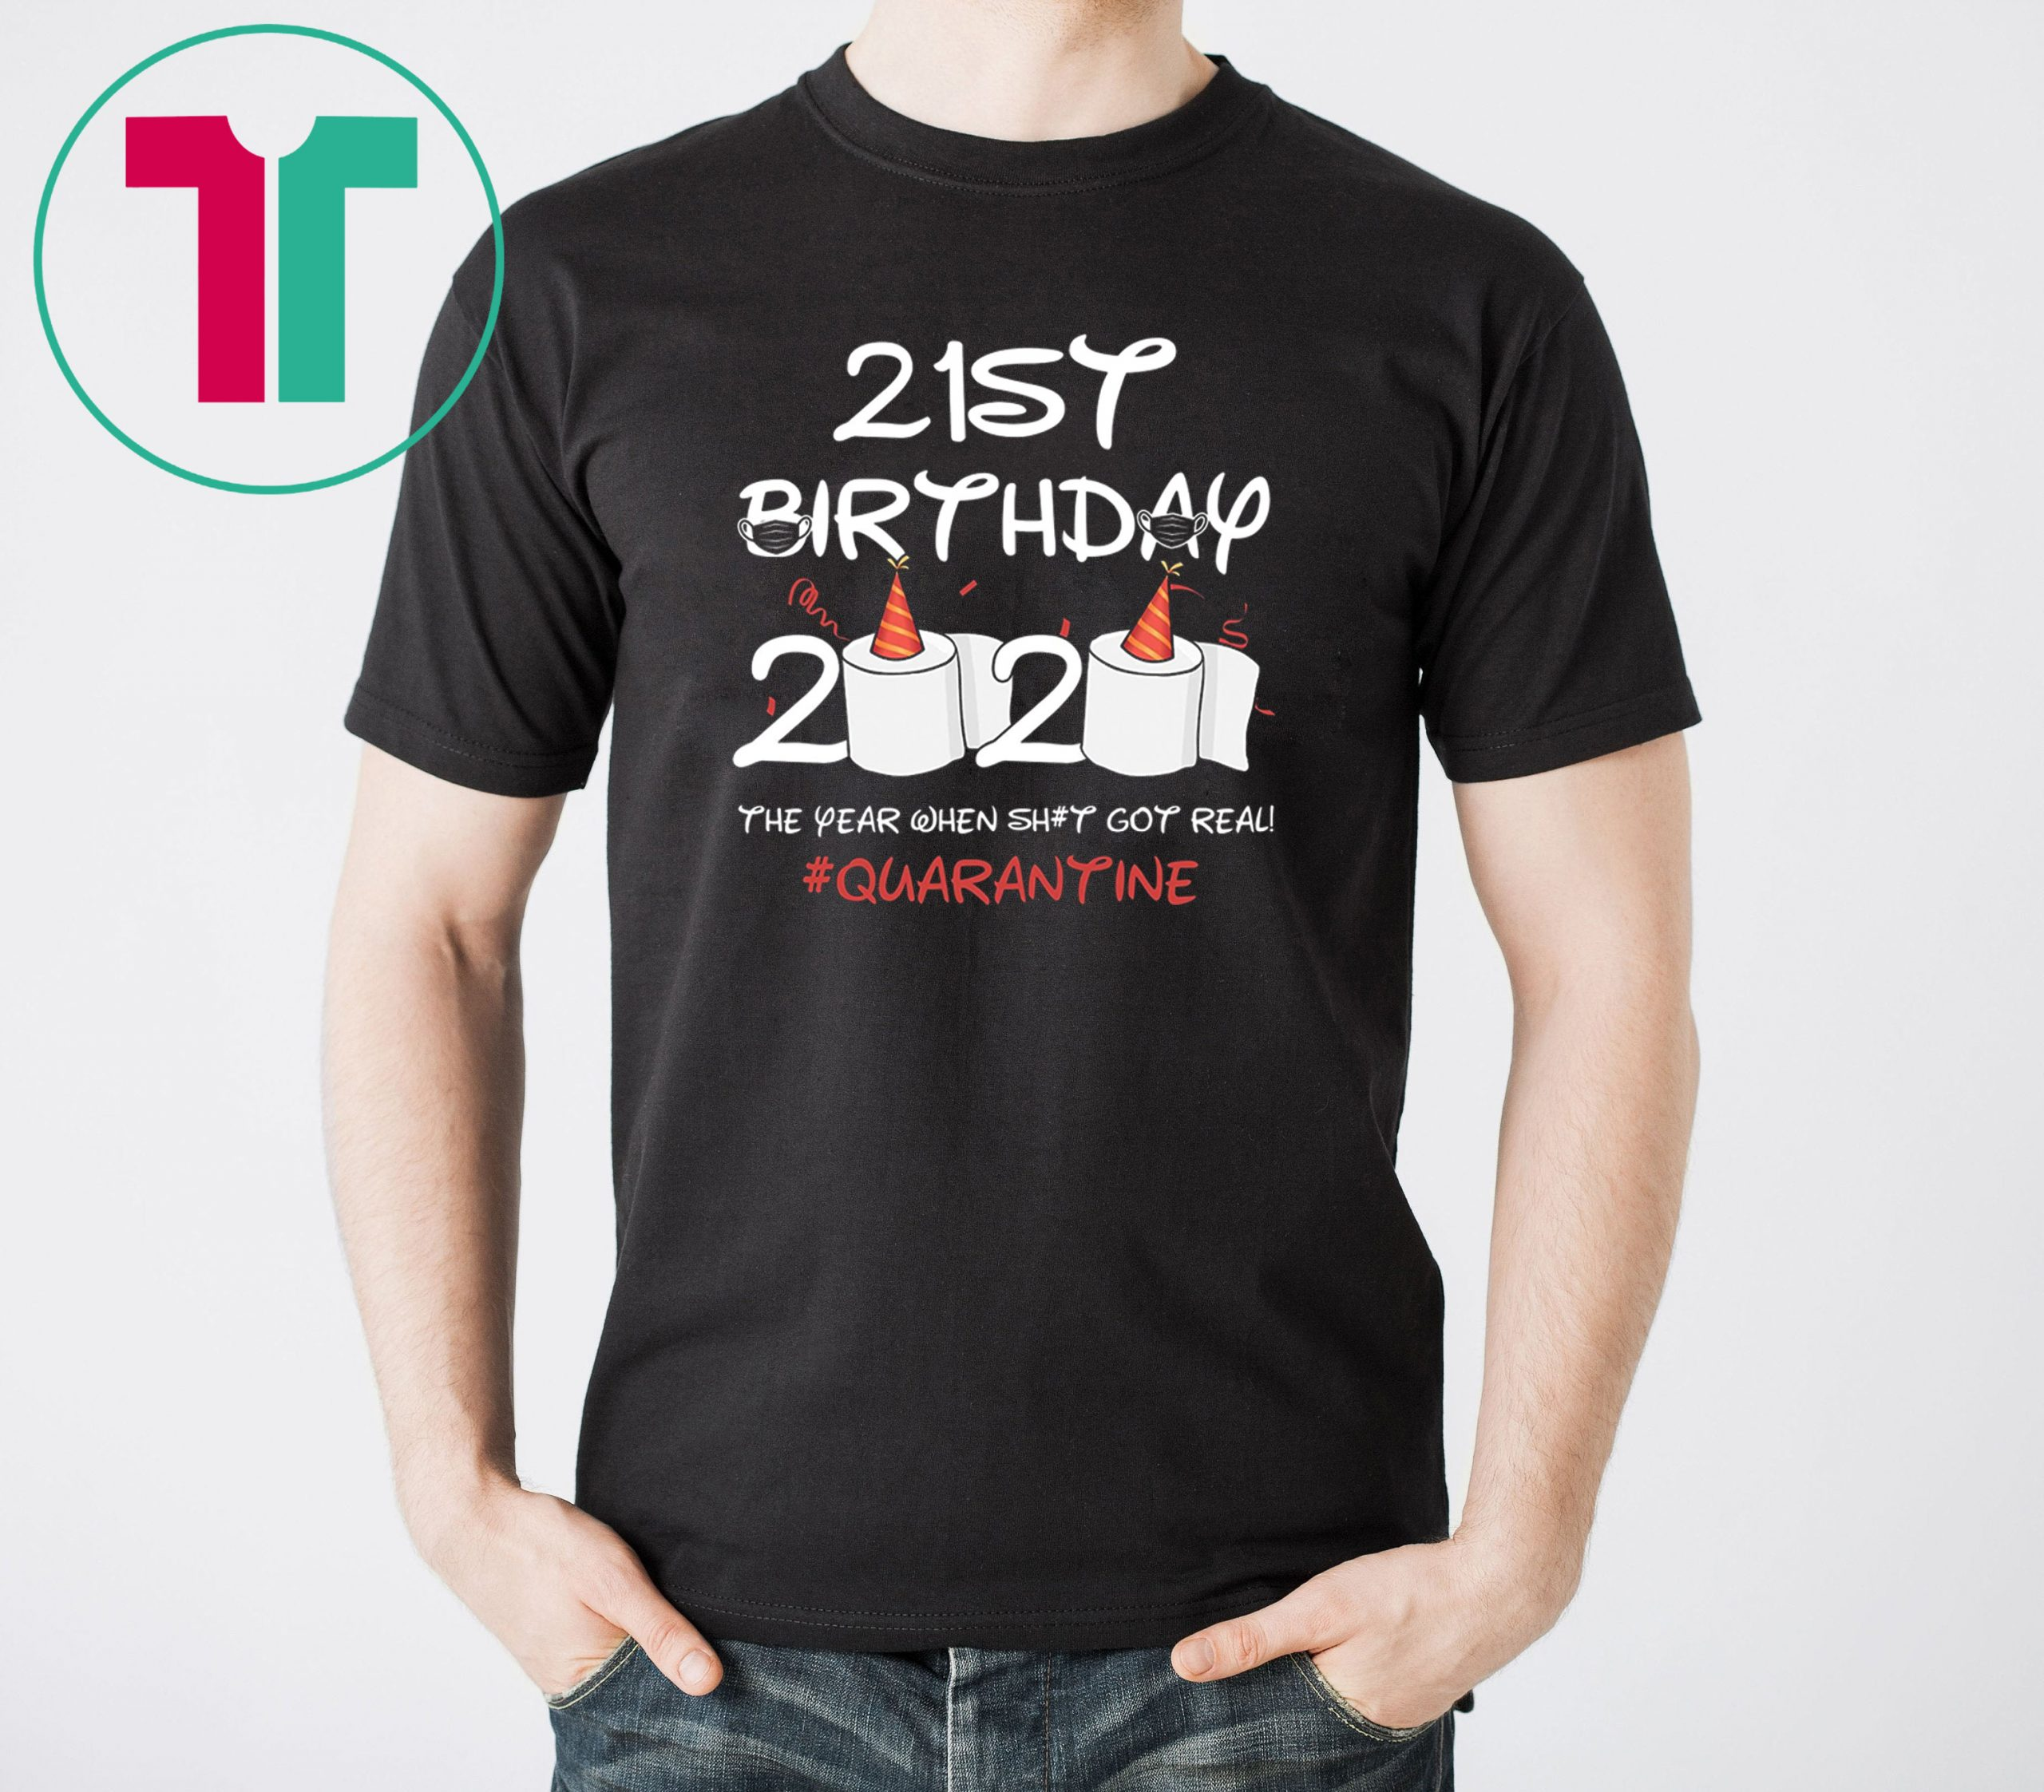 Born in 1999 Birthday Gift 21st Birthday 2020 The Year When Shit Got Real Quarantined Shirt Social Distancing Tee Shirt